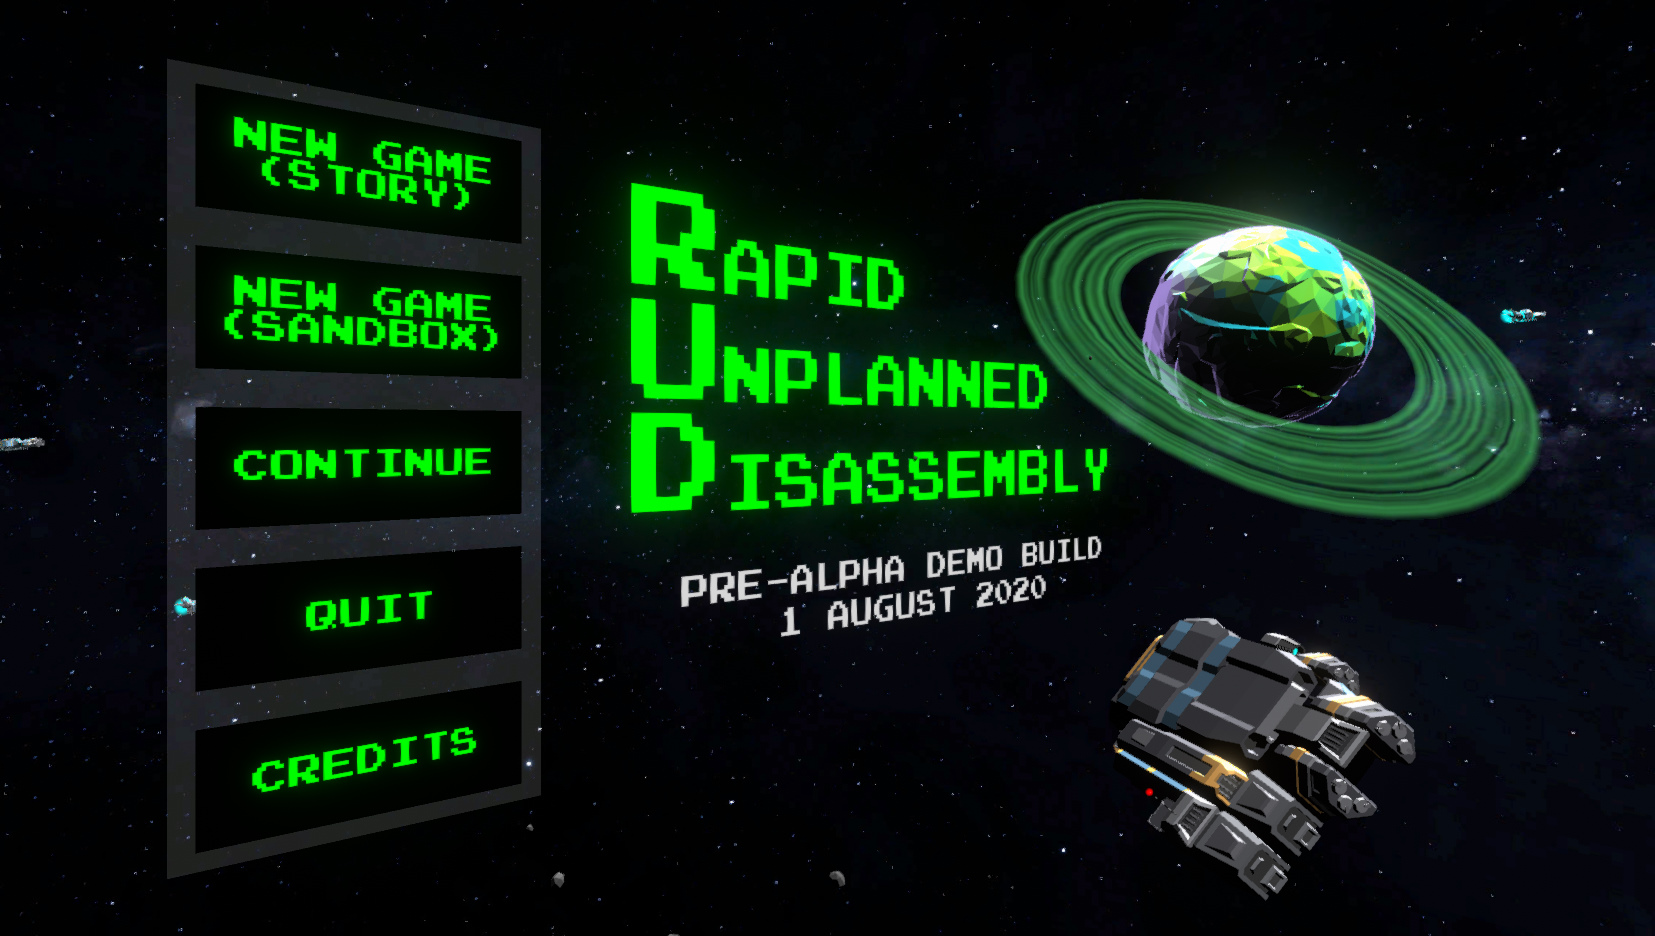 Rapid Unplanned Disassembly